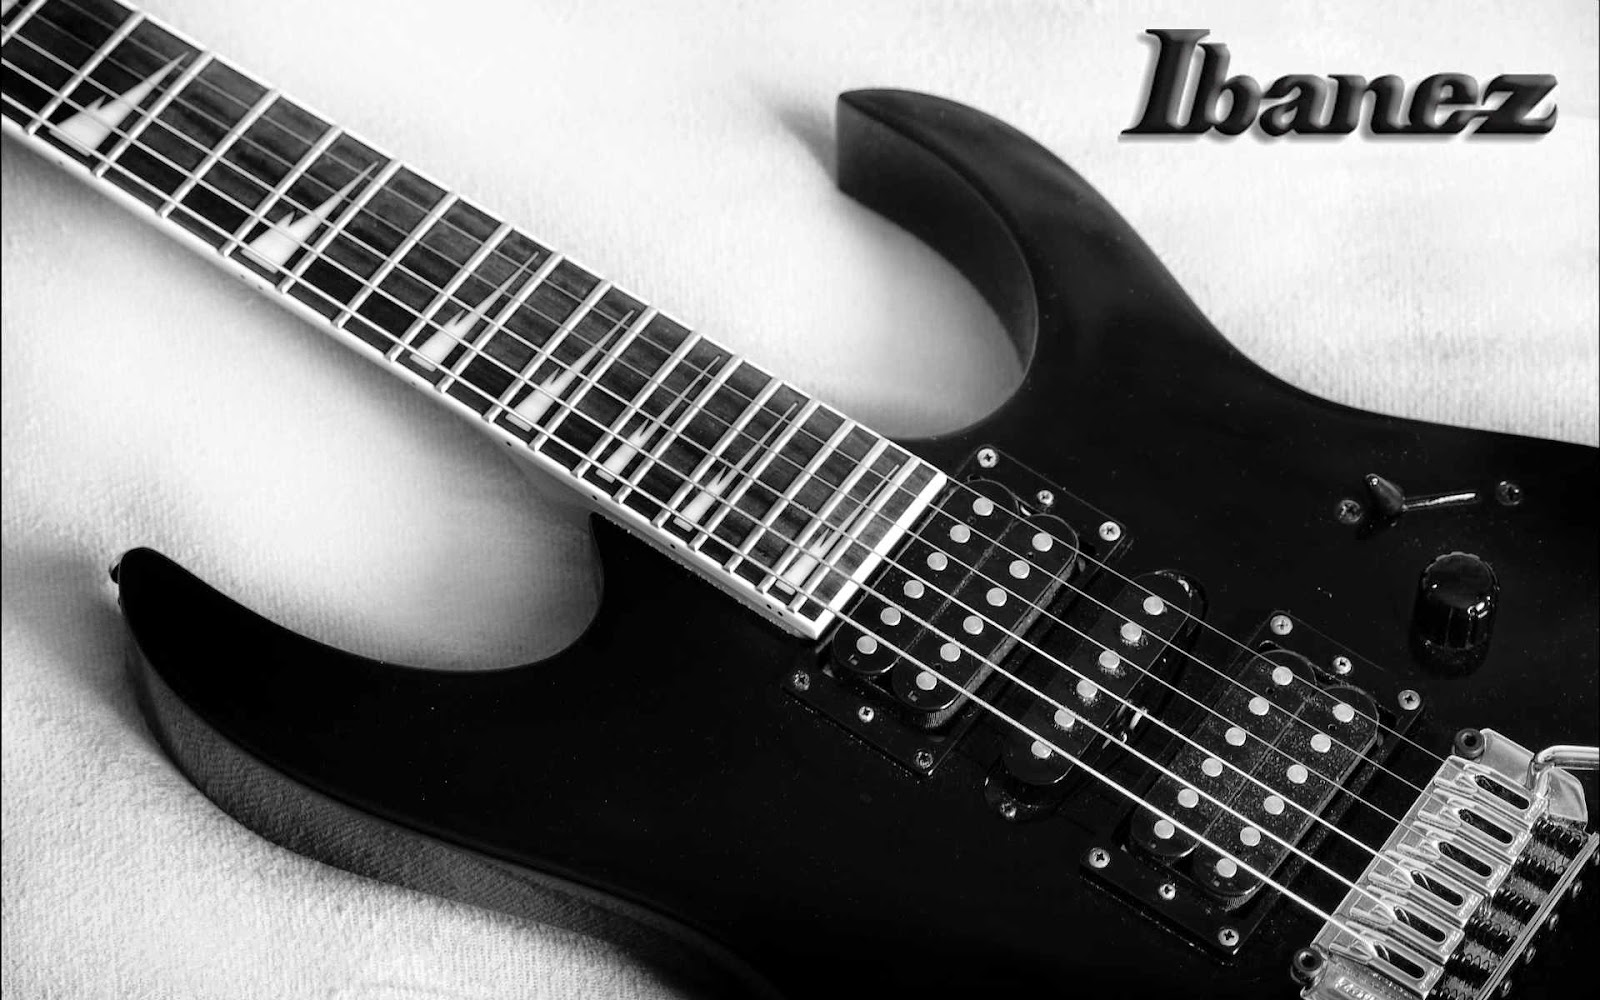 ibanez electric guitar wallpaper o wallpaper picture photo. Black Bedroom Furniture Sets. Home Design Ideas